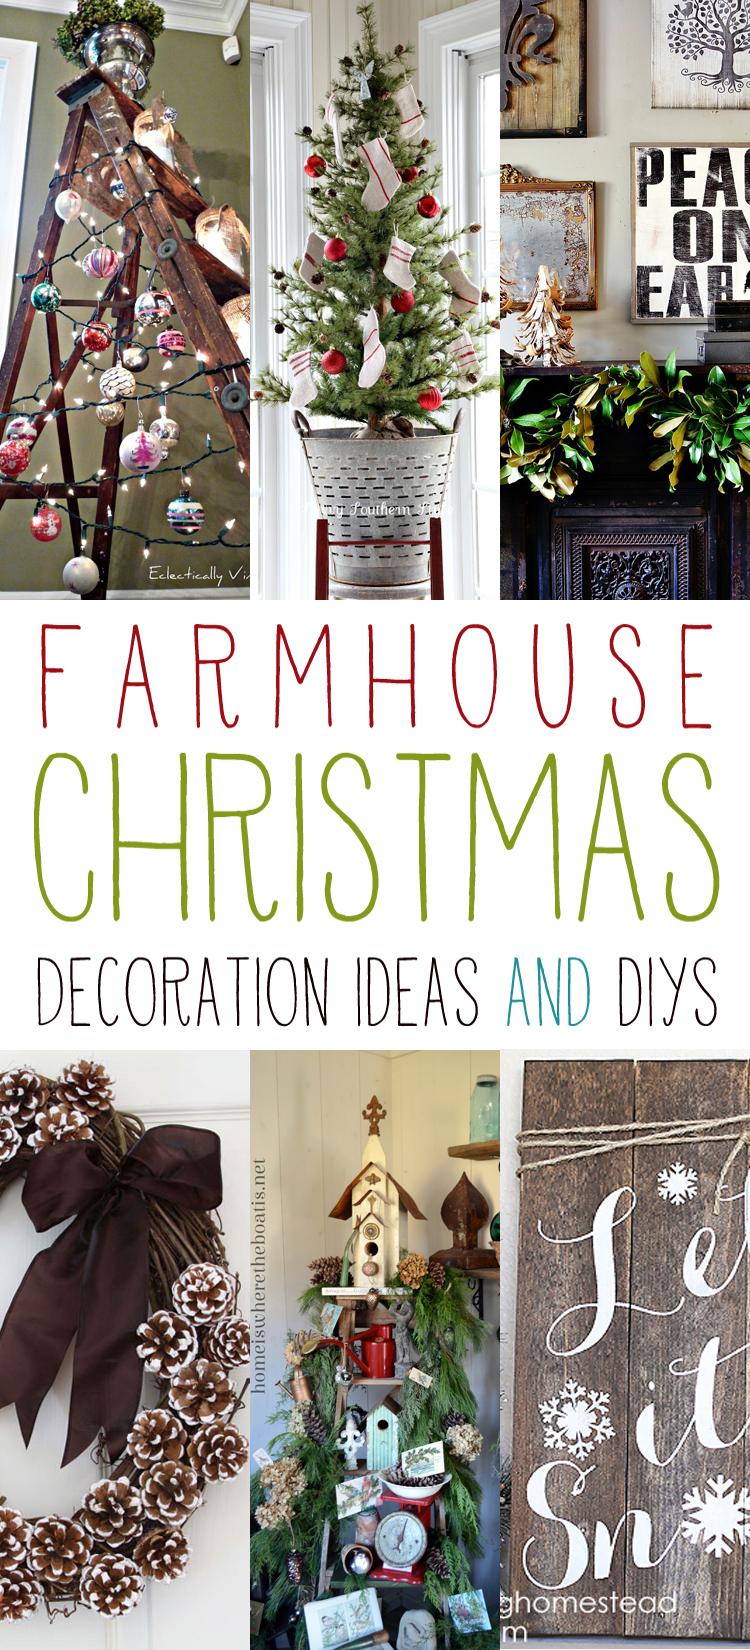 http://thecottagemarket.com/wp-content/uploads/2015/11/ChristmasFarmhouse-tower-001.jpg